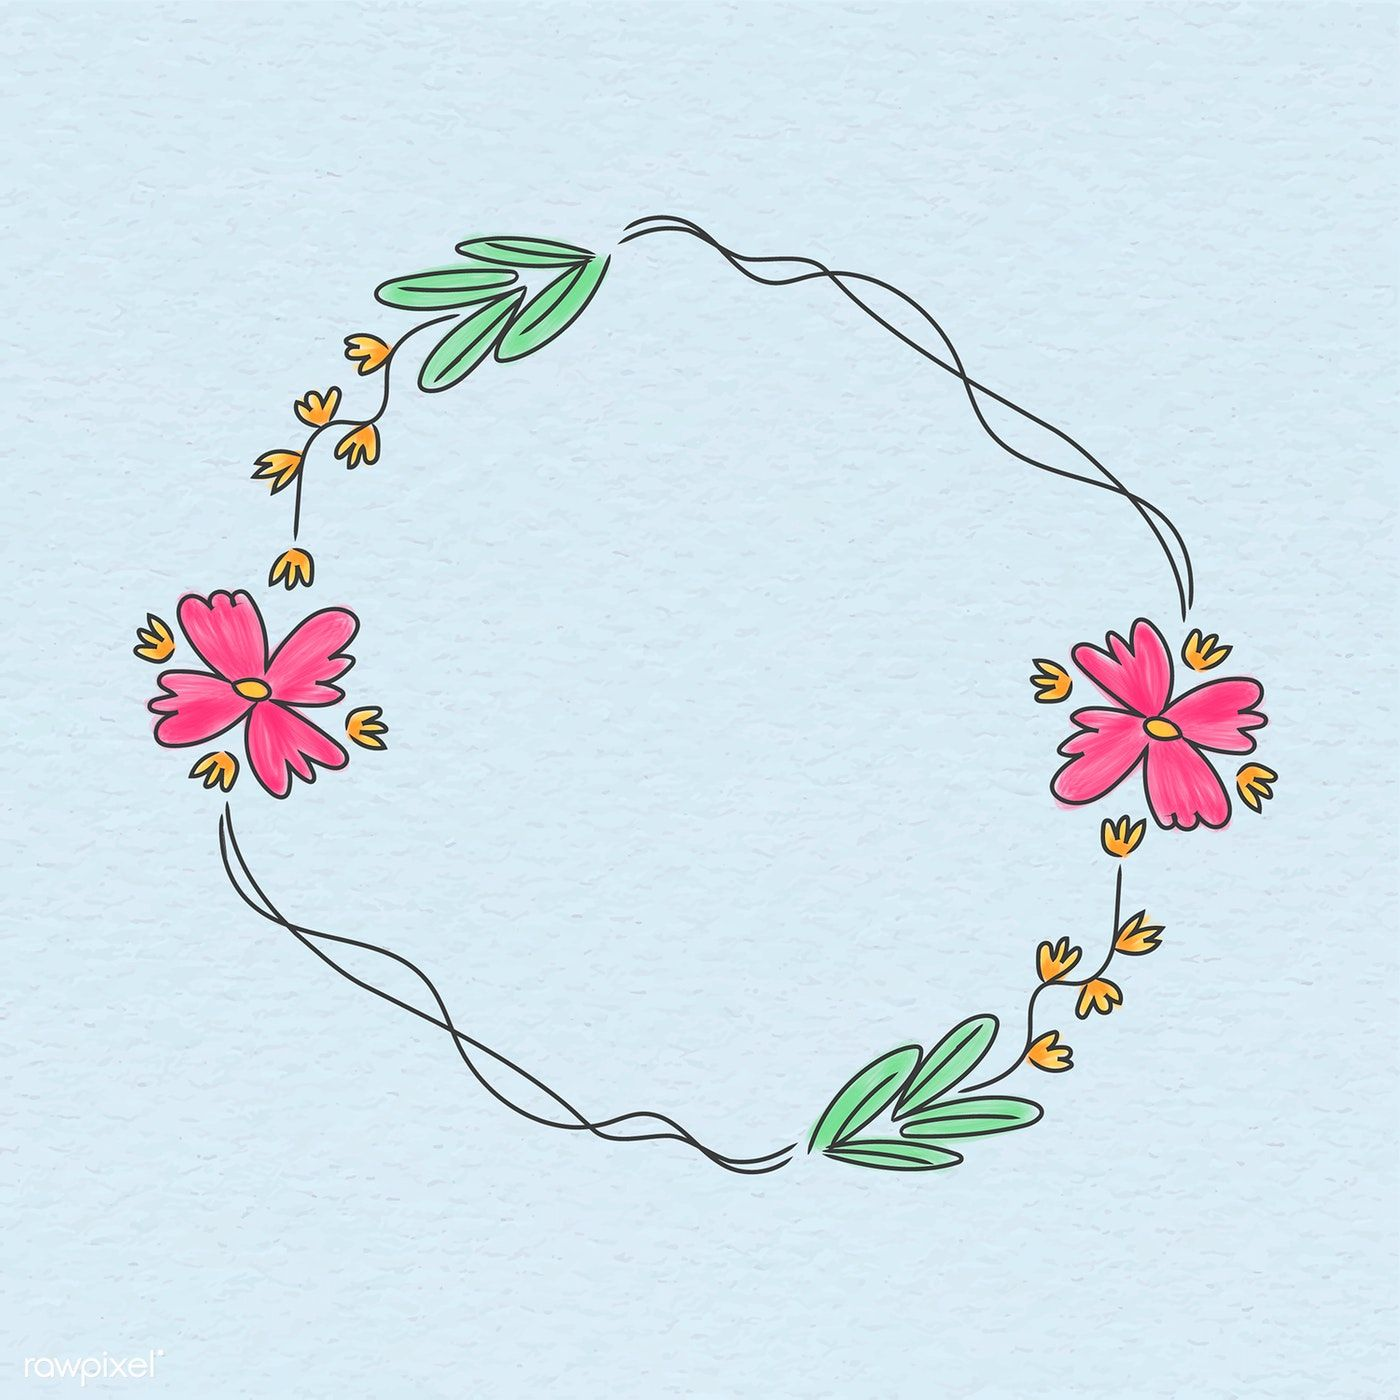 Photo of Download free illustration of Cute doodle floral wreath illustration